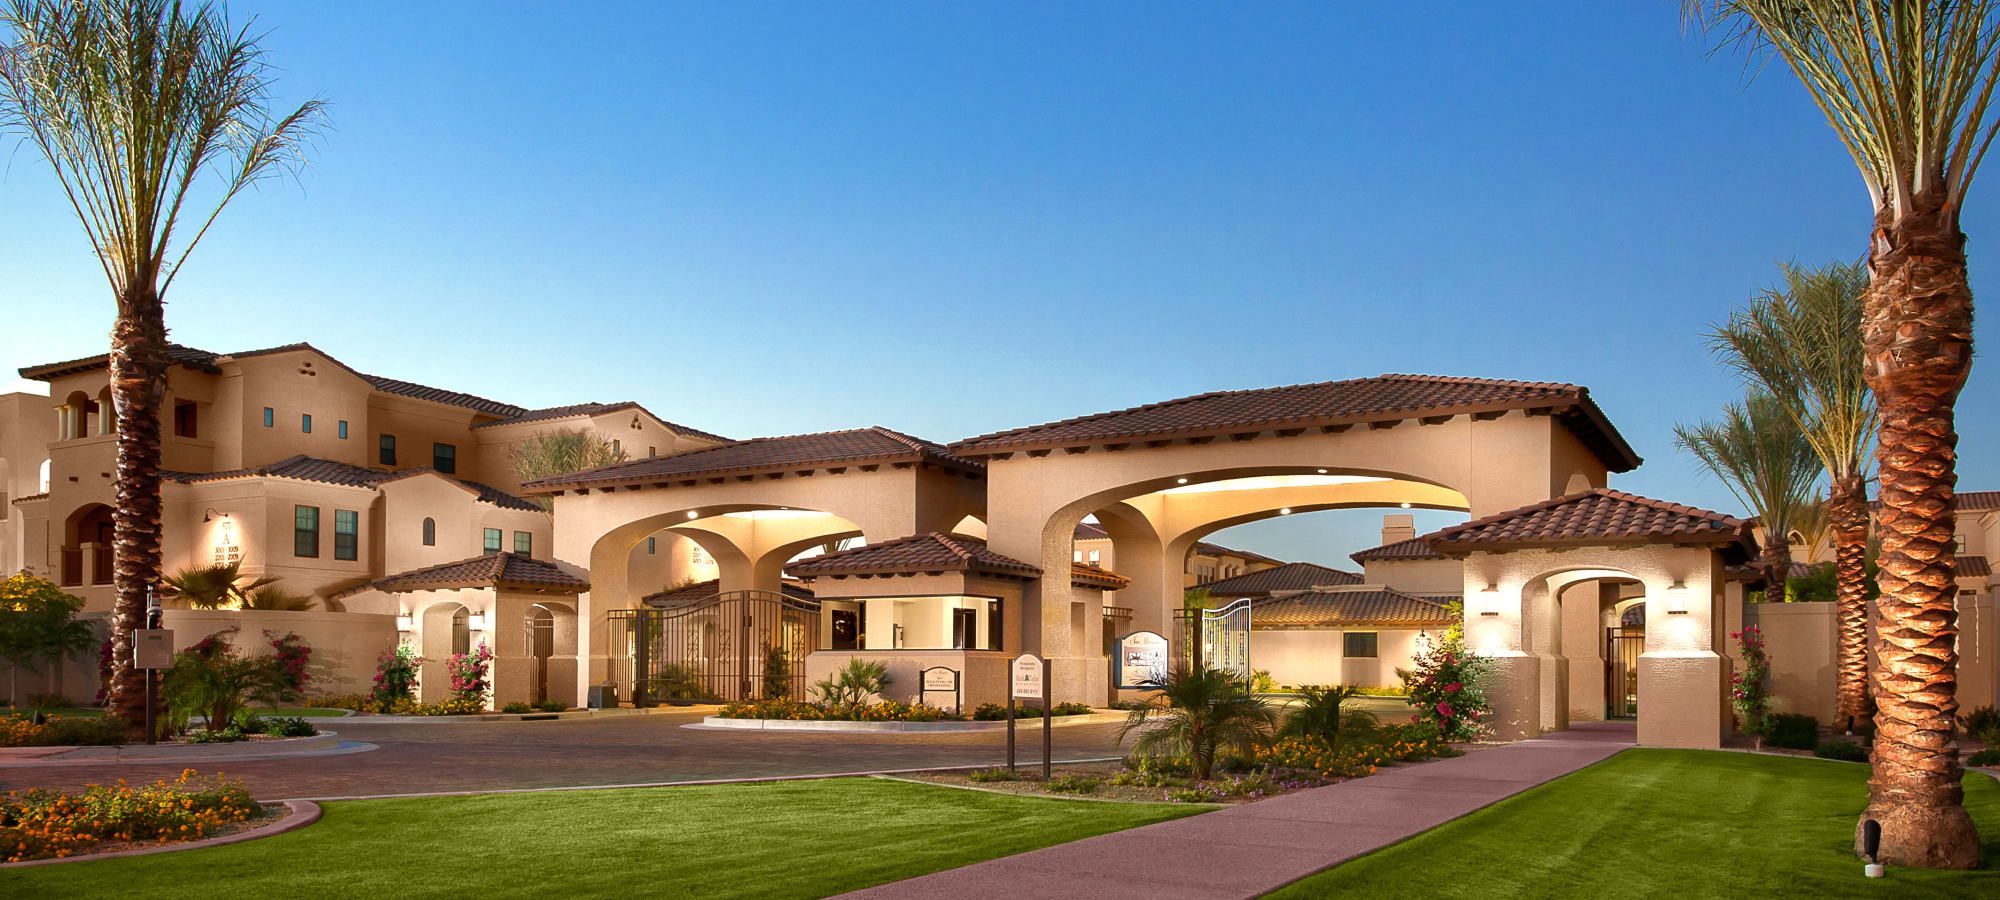 Beautifully landscaped entry to our community at San Marquis in Tempe, Arizona